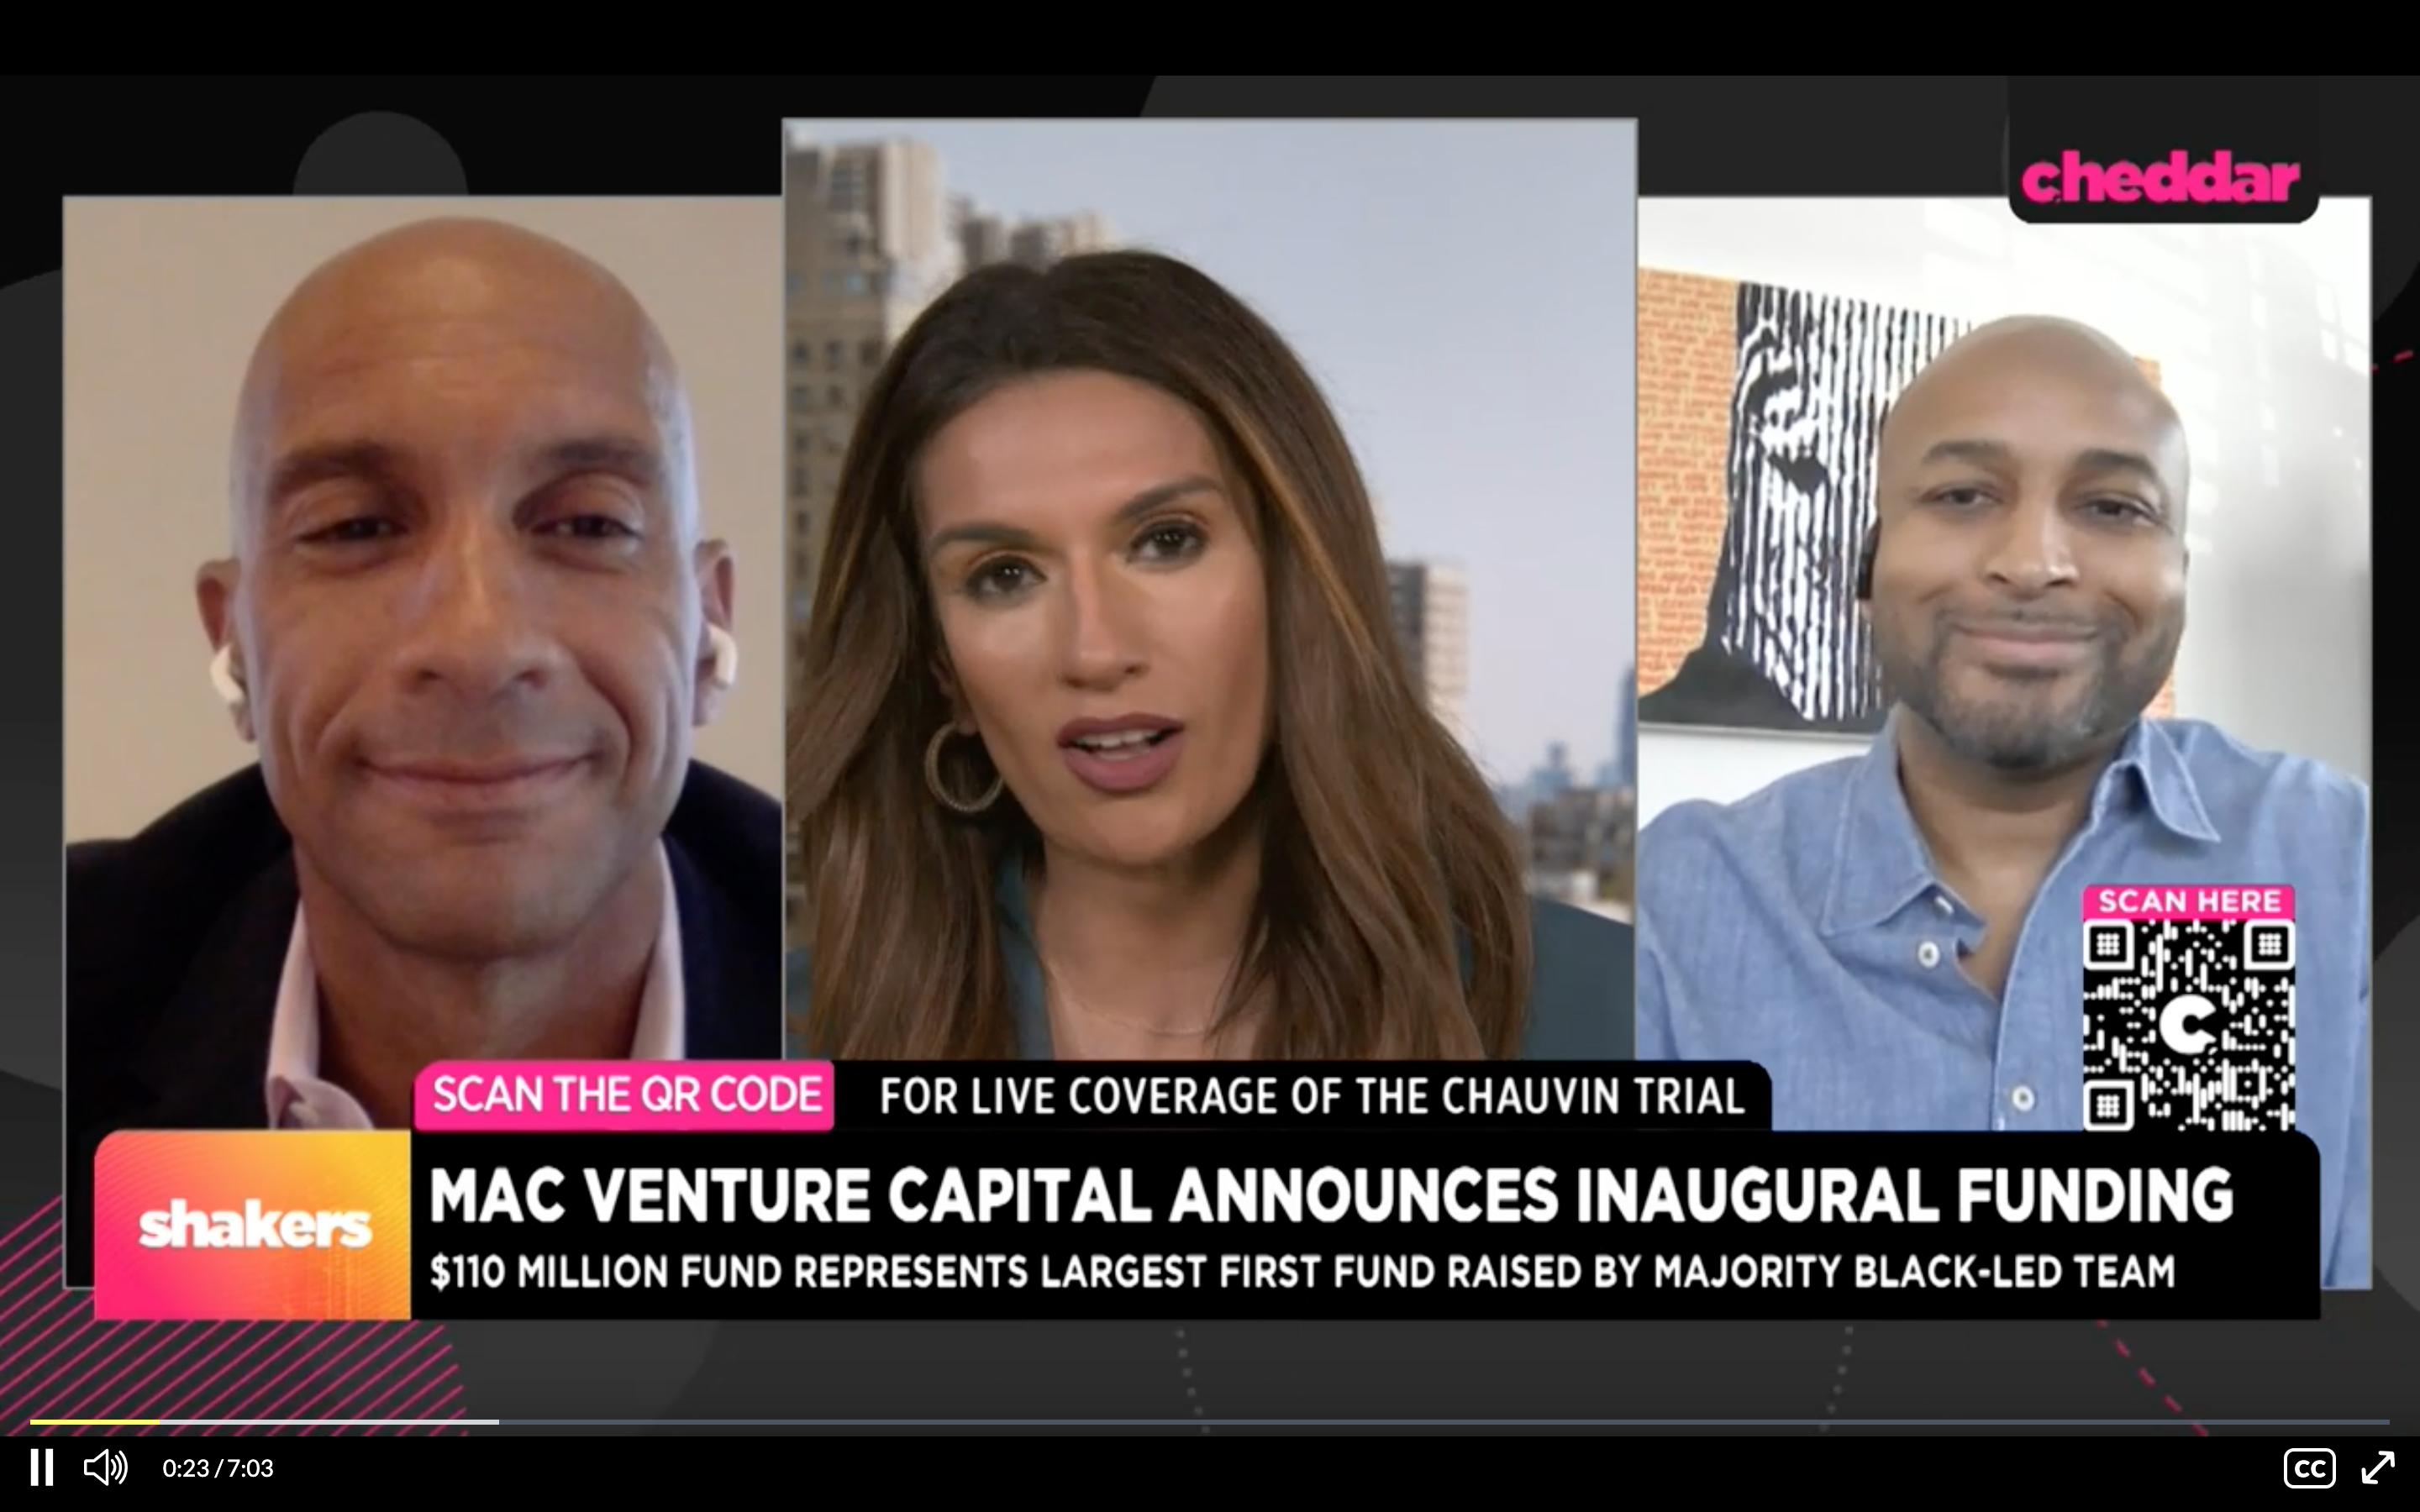 MaC Venture Capital Announces $110 Million in Inaugural Funding